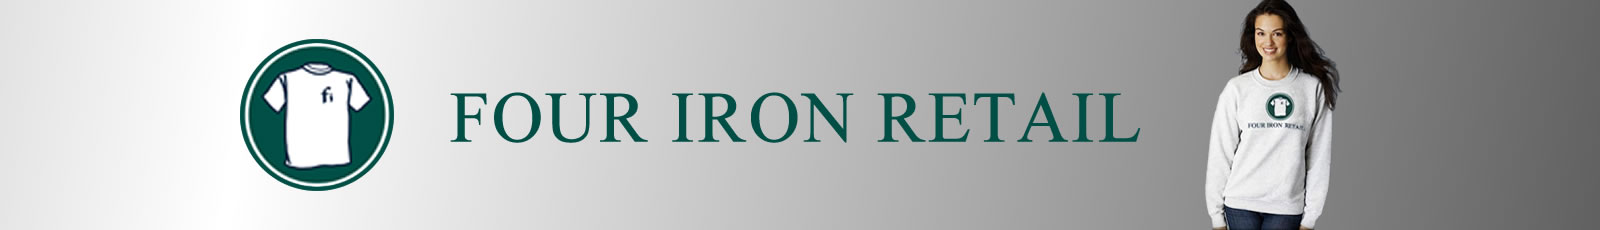 Four Iron Retail website banner